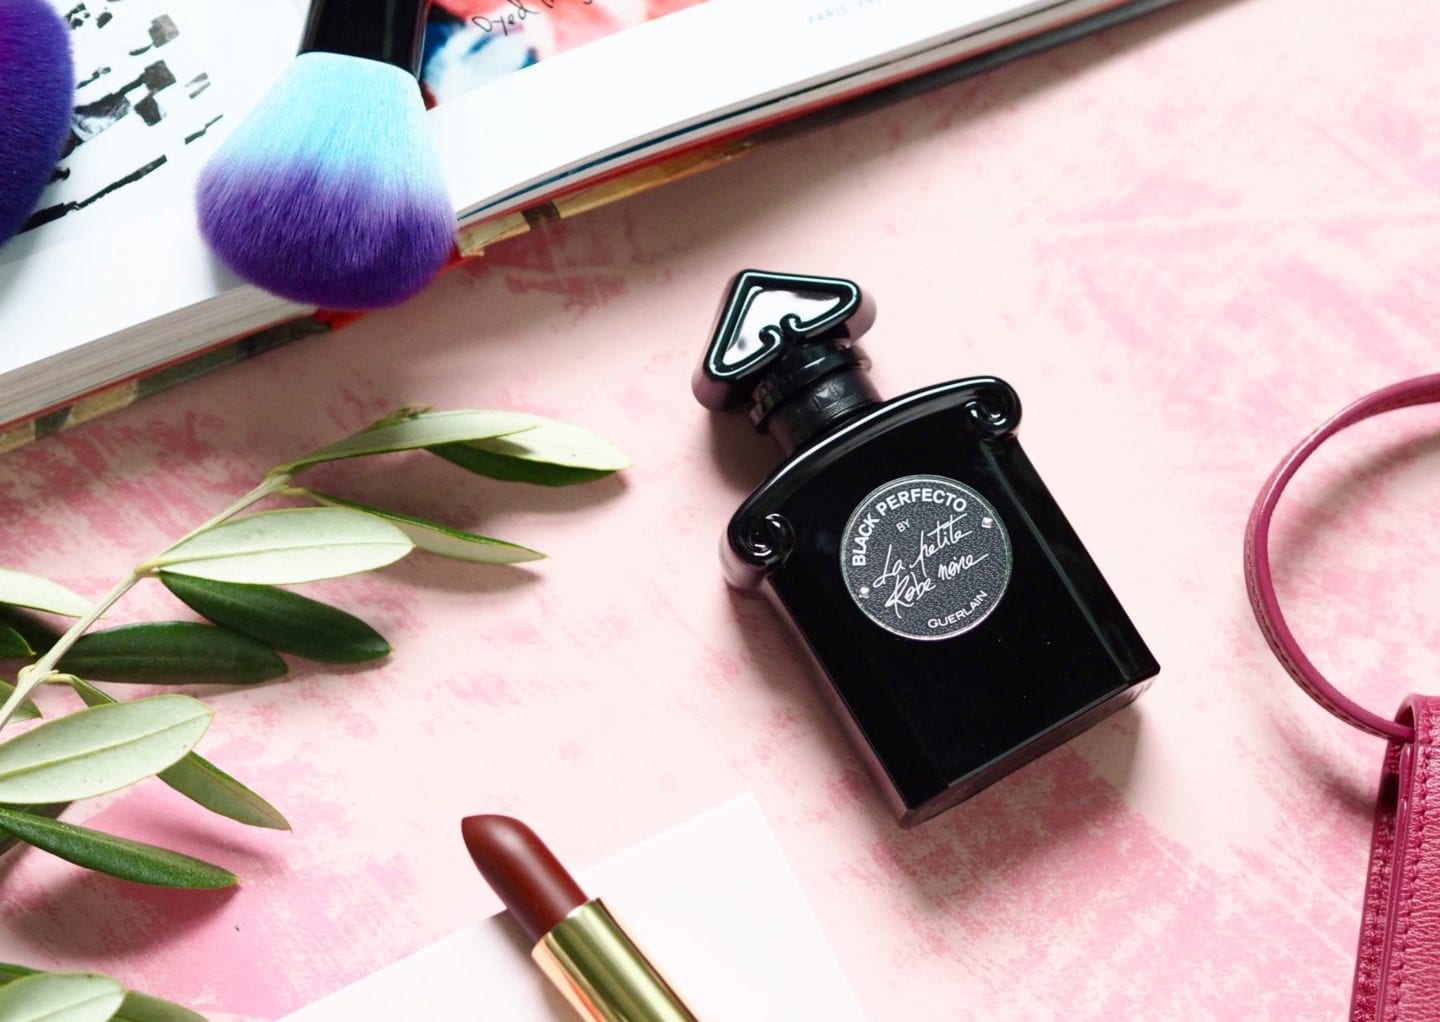 a0c13617f11 Perfume  Guerlain  Black Perfecto  - Fashion For Lunch.